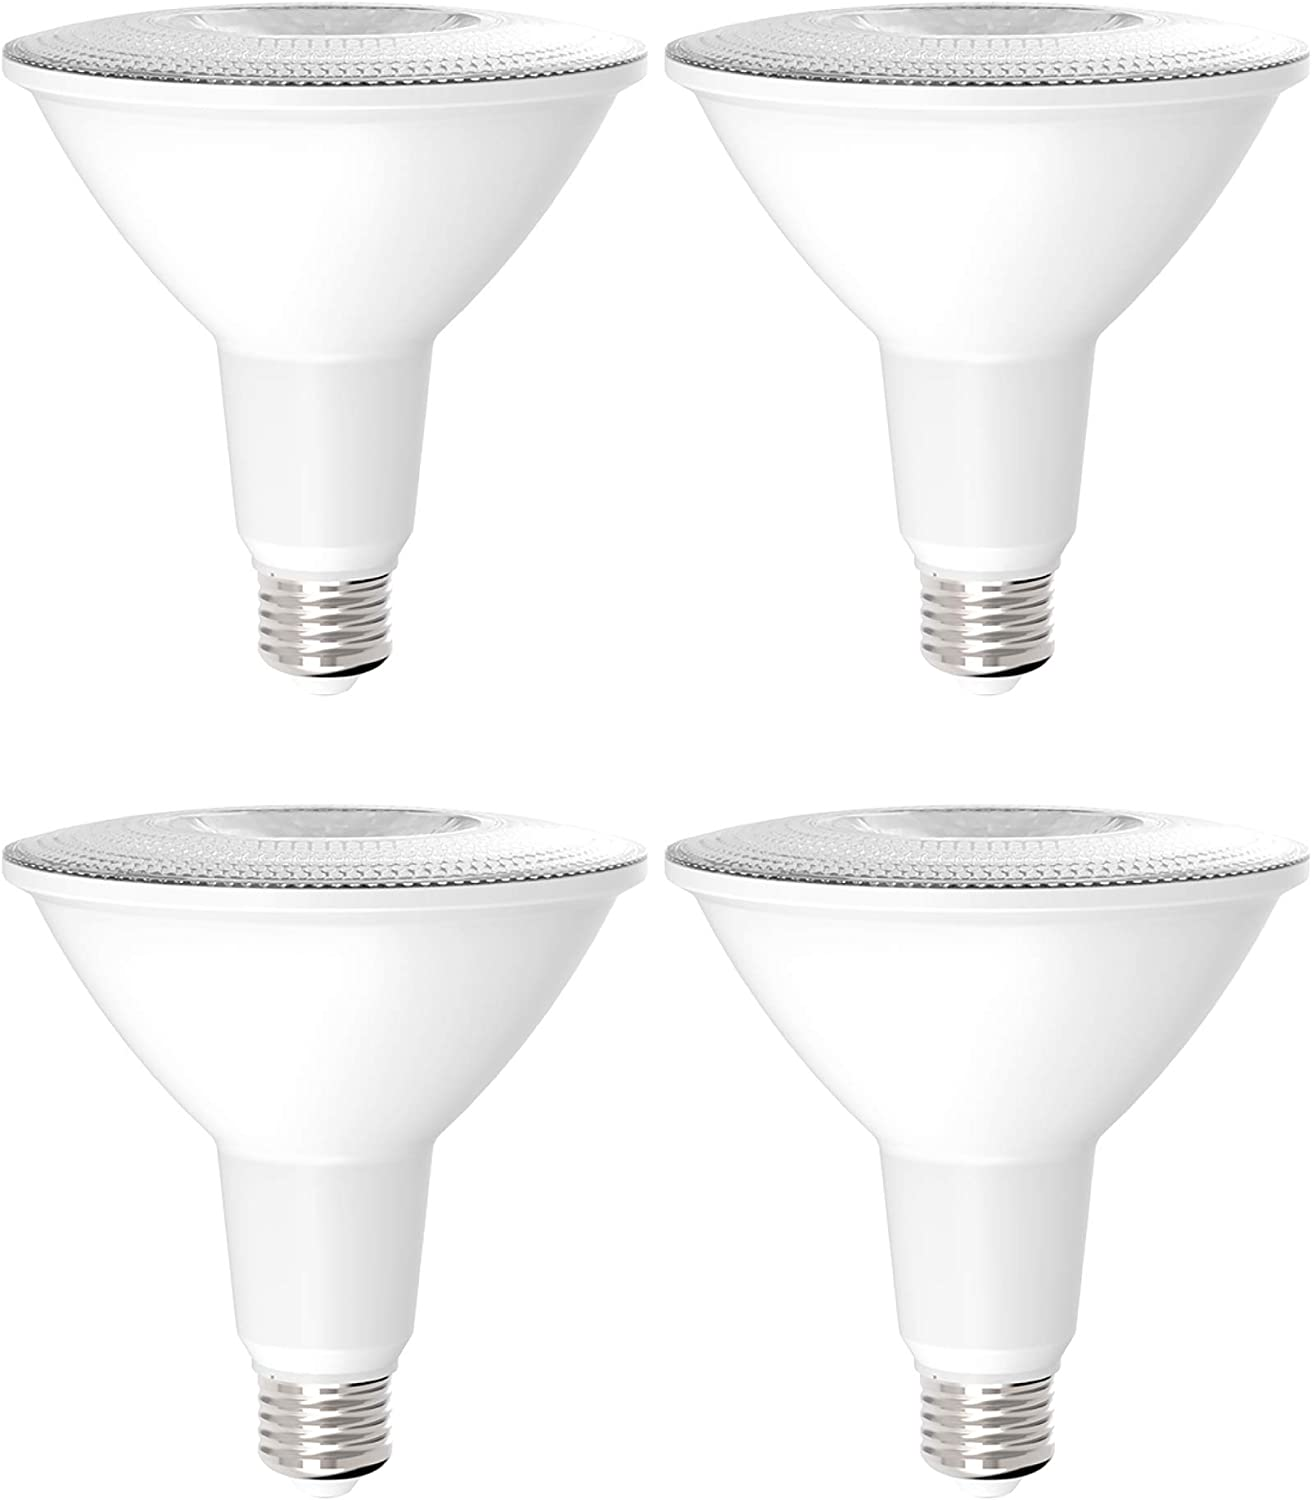 Sunco Lighting 4 Pack PAR38 LED Bulb, Dusk-to-Dawn + Radar Motion, 13W=100W, 4000K Cool White, 1050 LM, Indoor/Outdoor, Photocell + Motion Sensor, Security Flood Light - UL